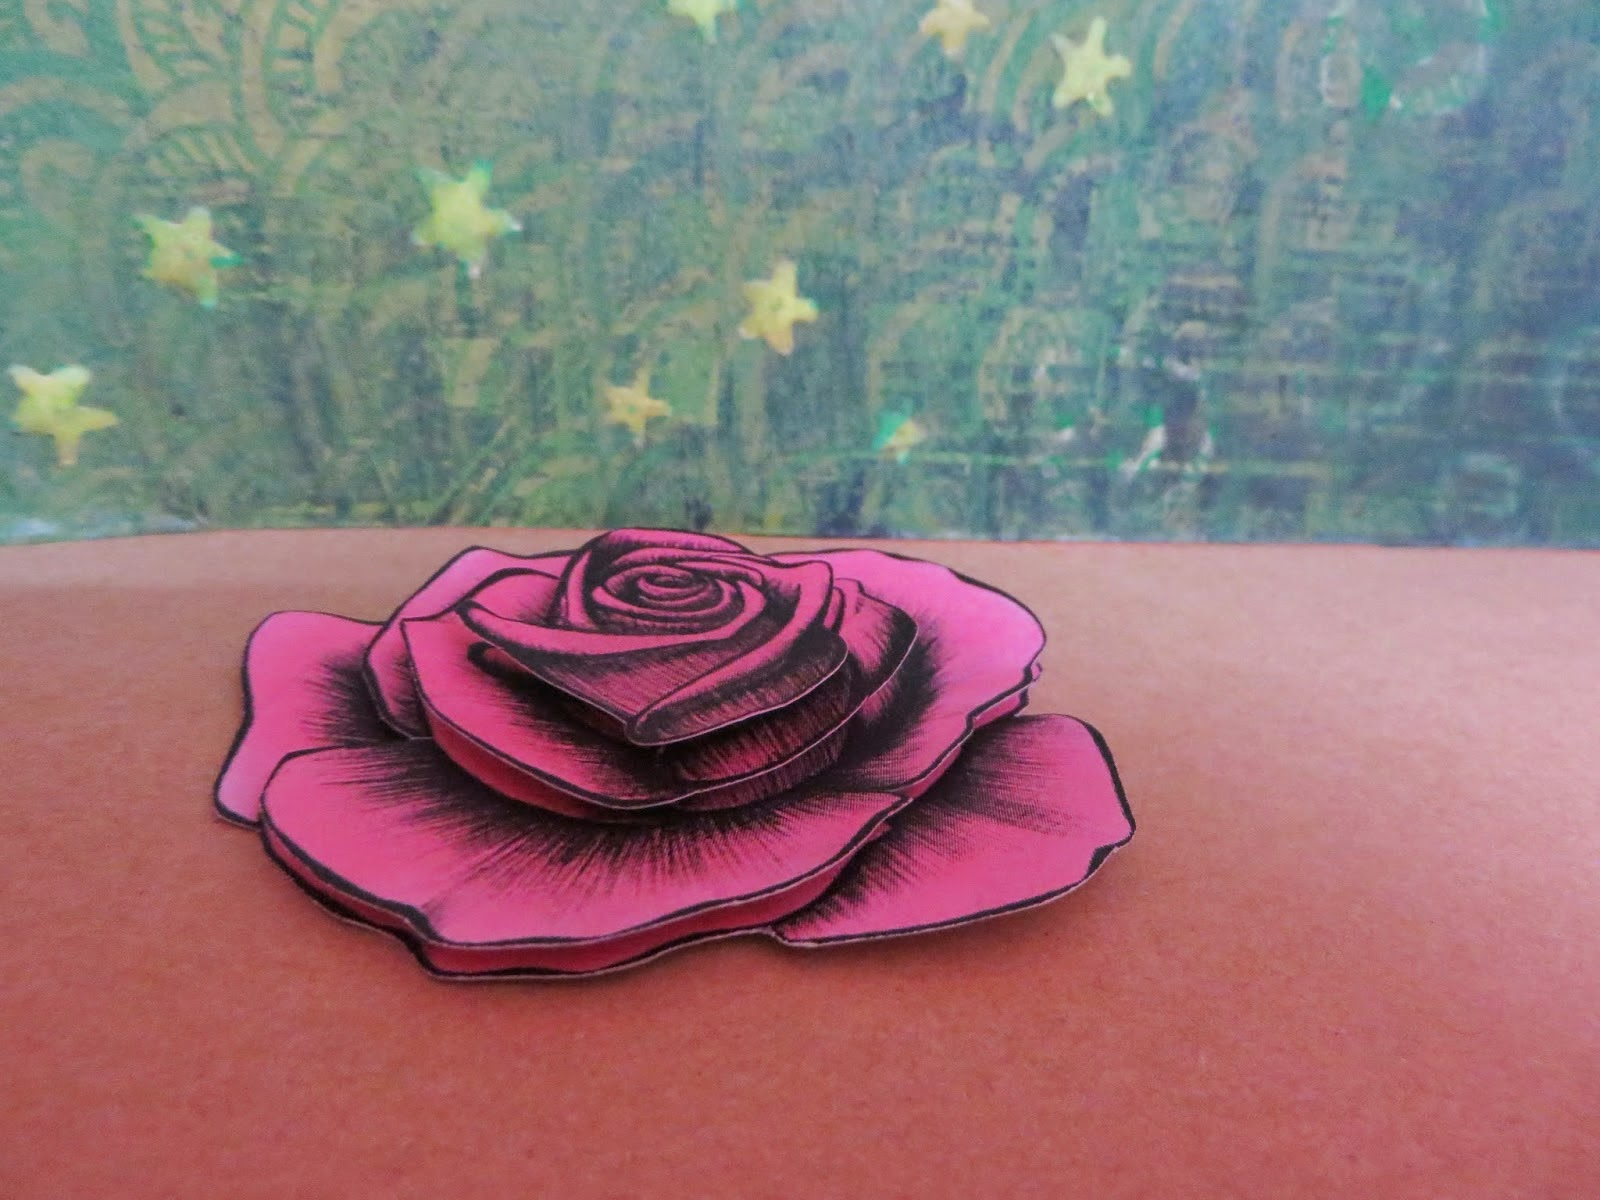 http://craftconcoction.blogspot.com/2015/02/paper-tole-rose-tutorial.html